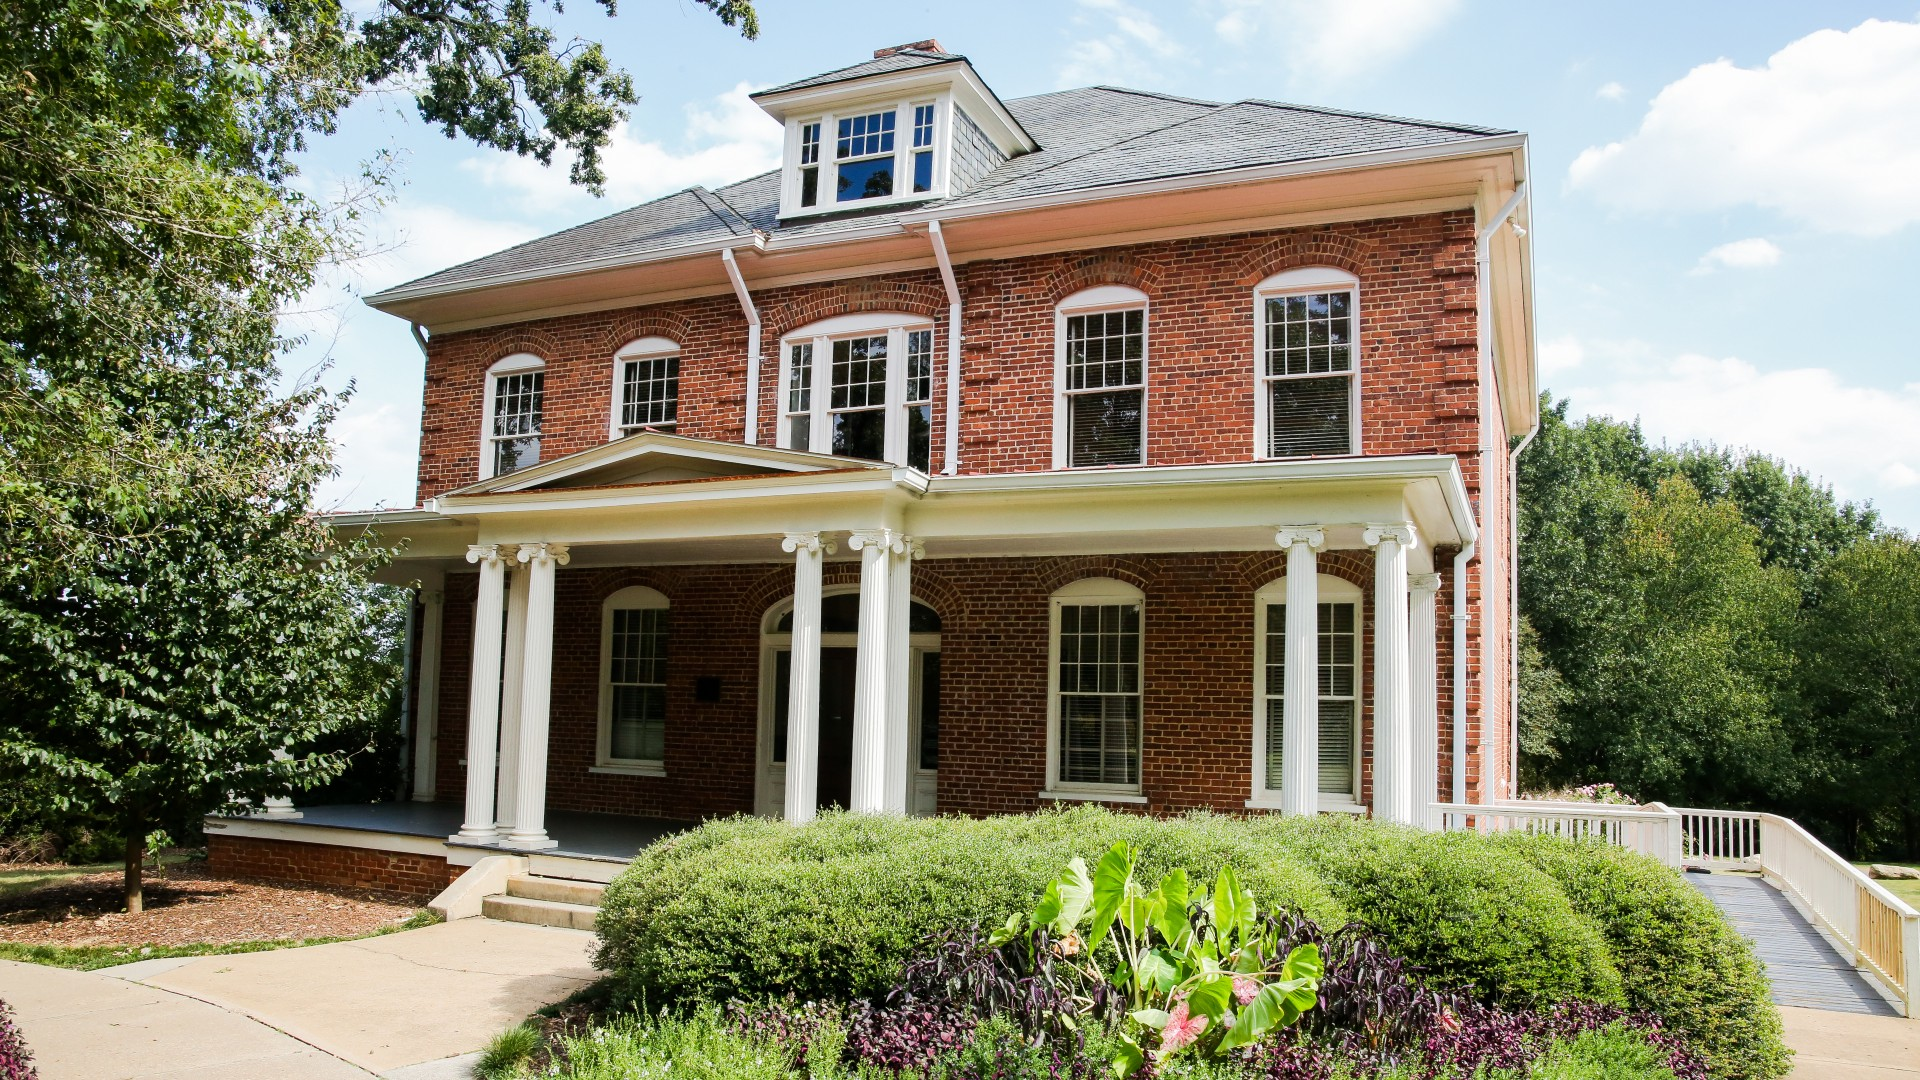 A large brick house that can be rented for special events